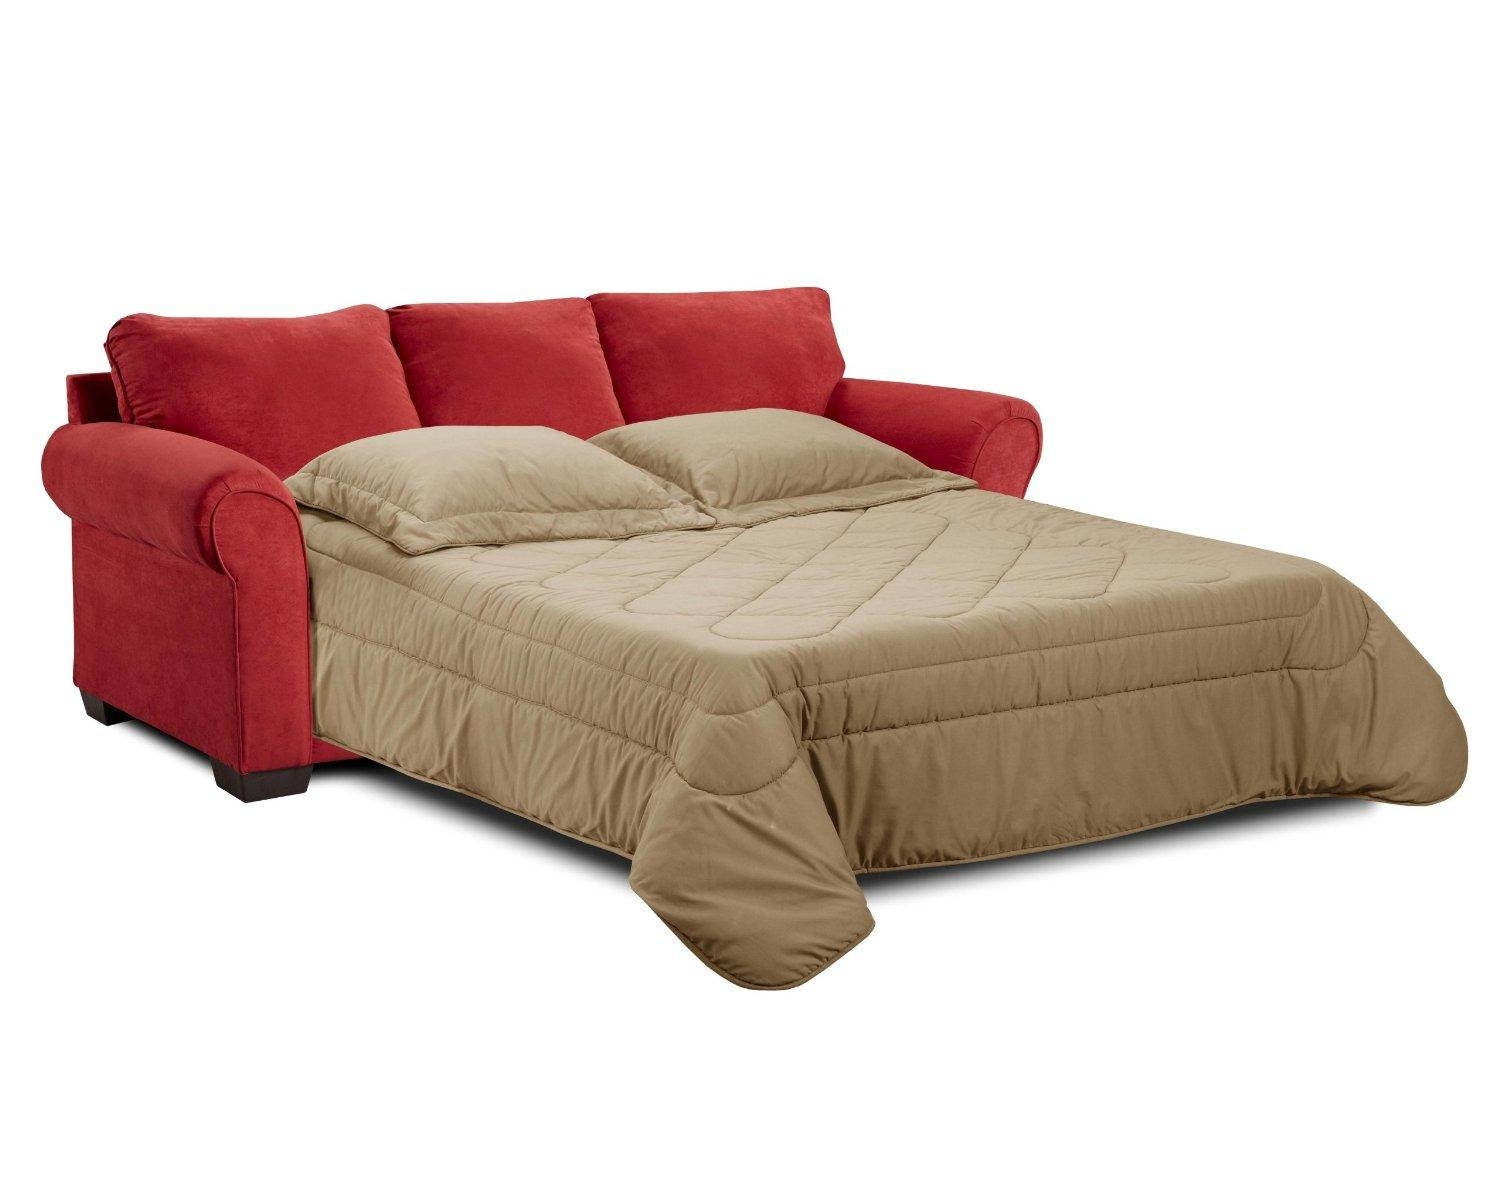 queen sofa bed sears bernhardt sofas 20 best collection of beds sheets ideas